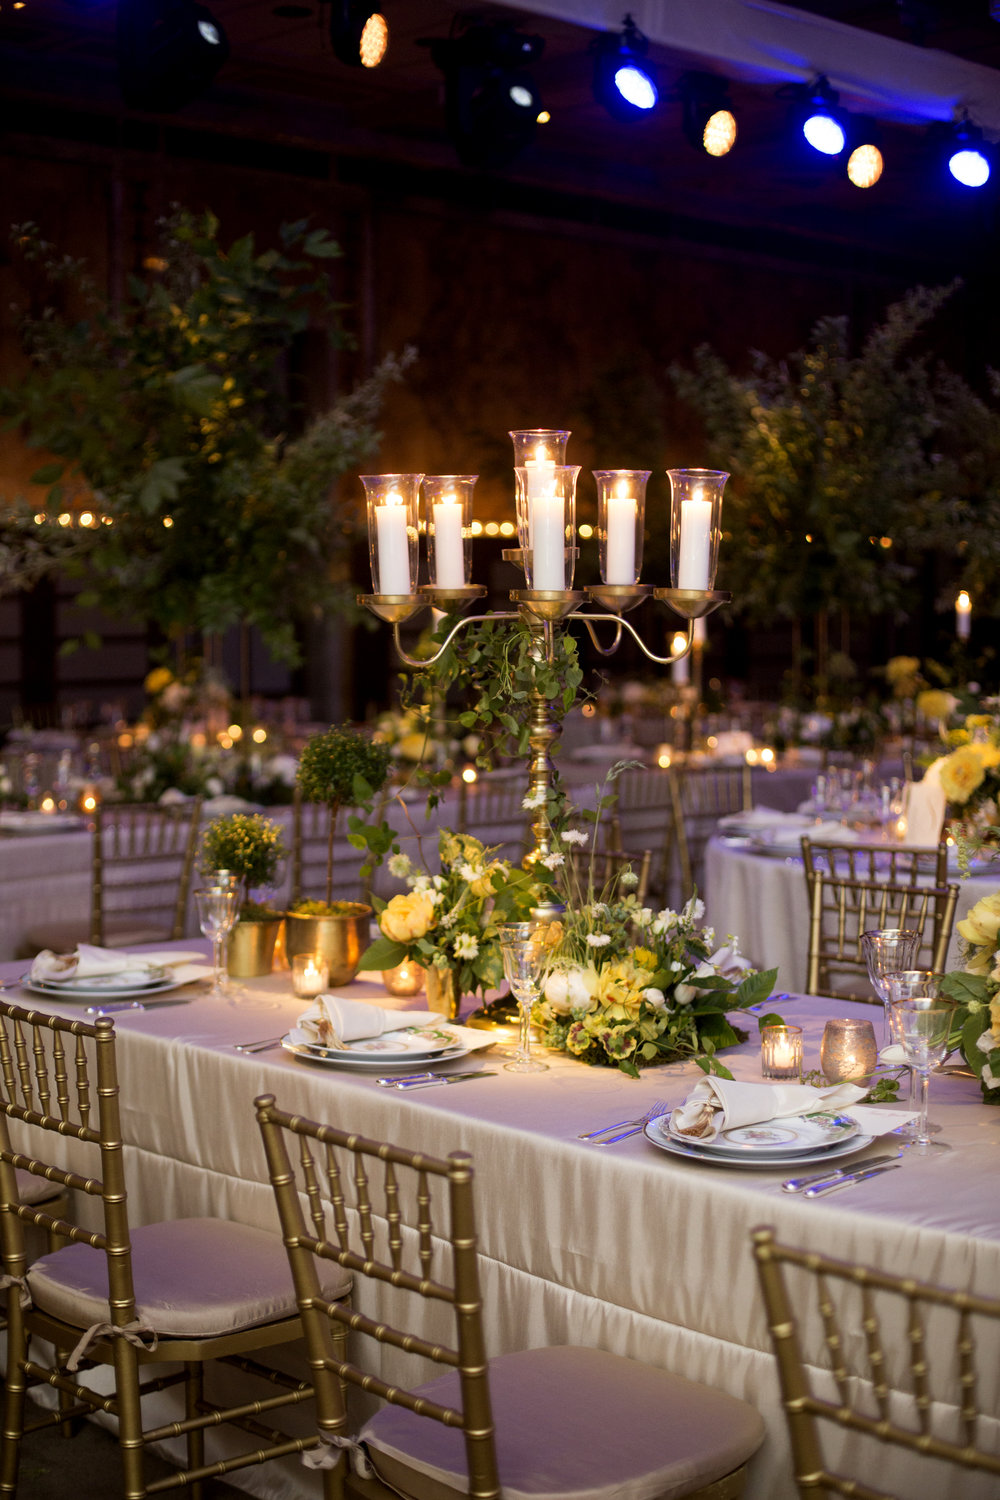 wedding-venue-night-view-table-setting